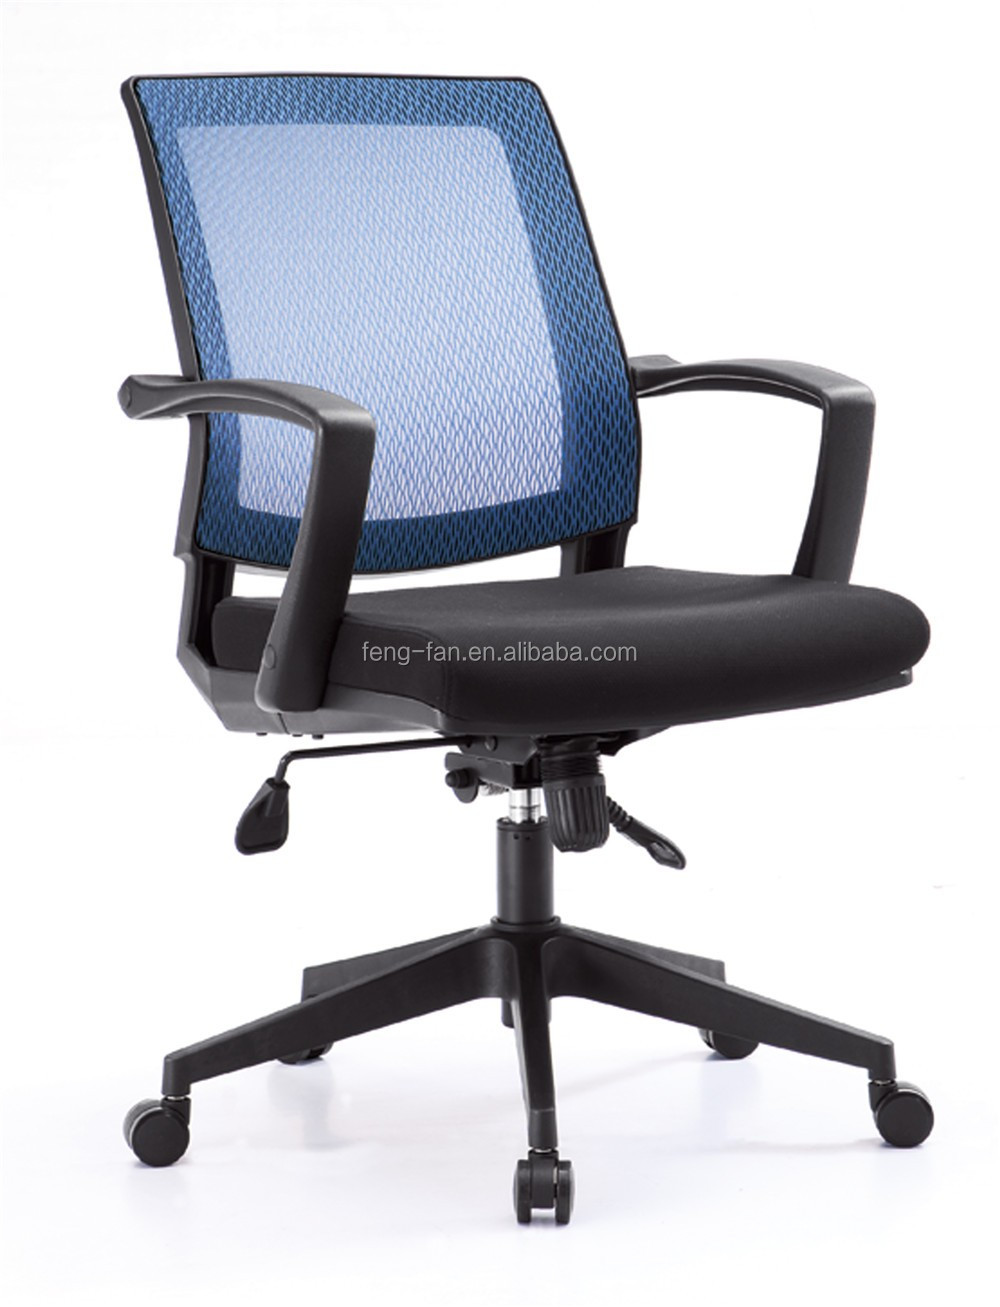 Ergonomic office chair executive mesh office chair made in Foshan city of China 450